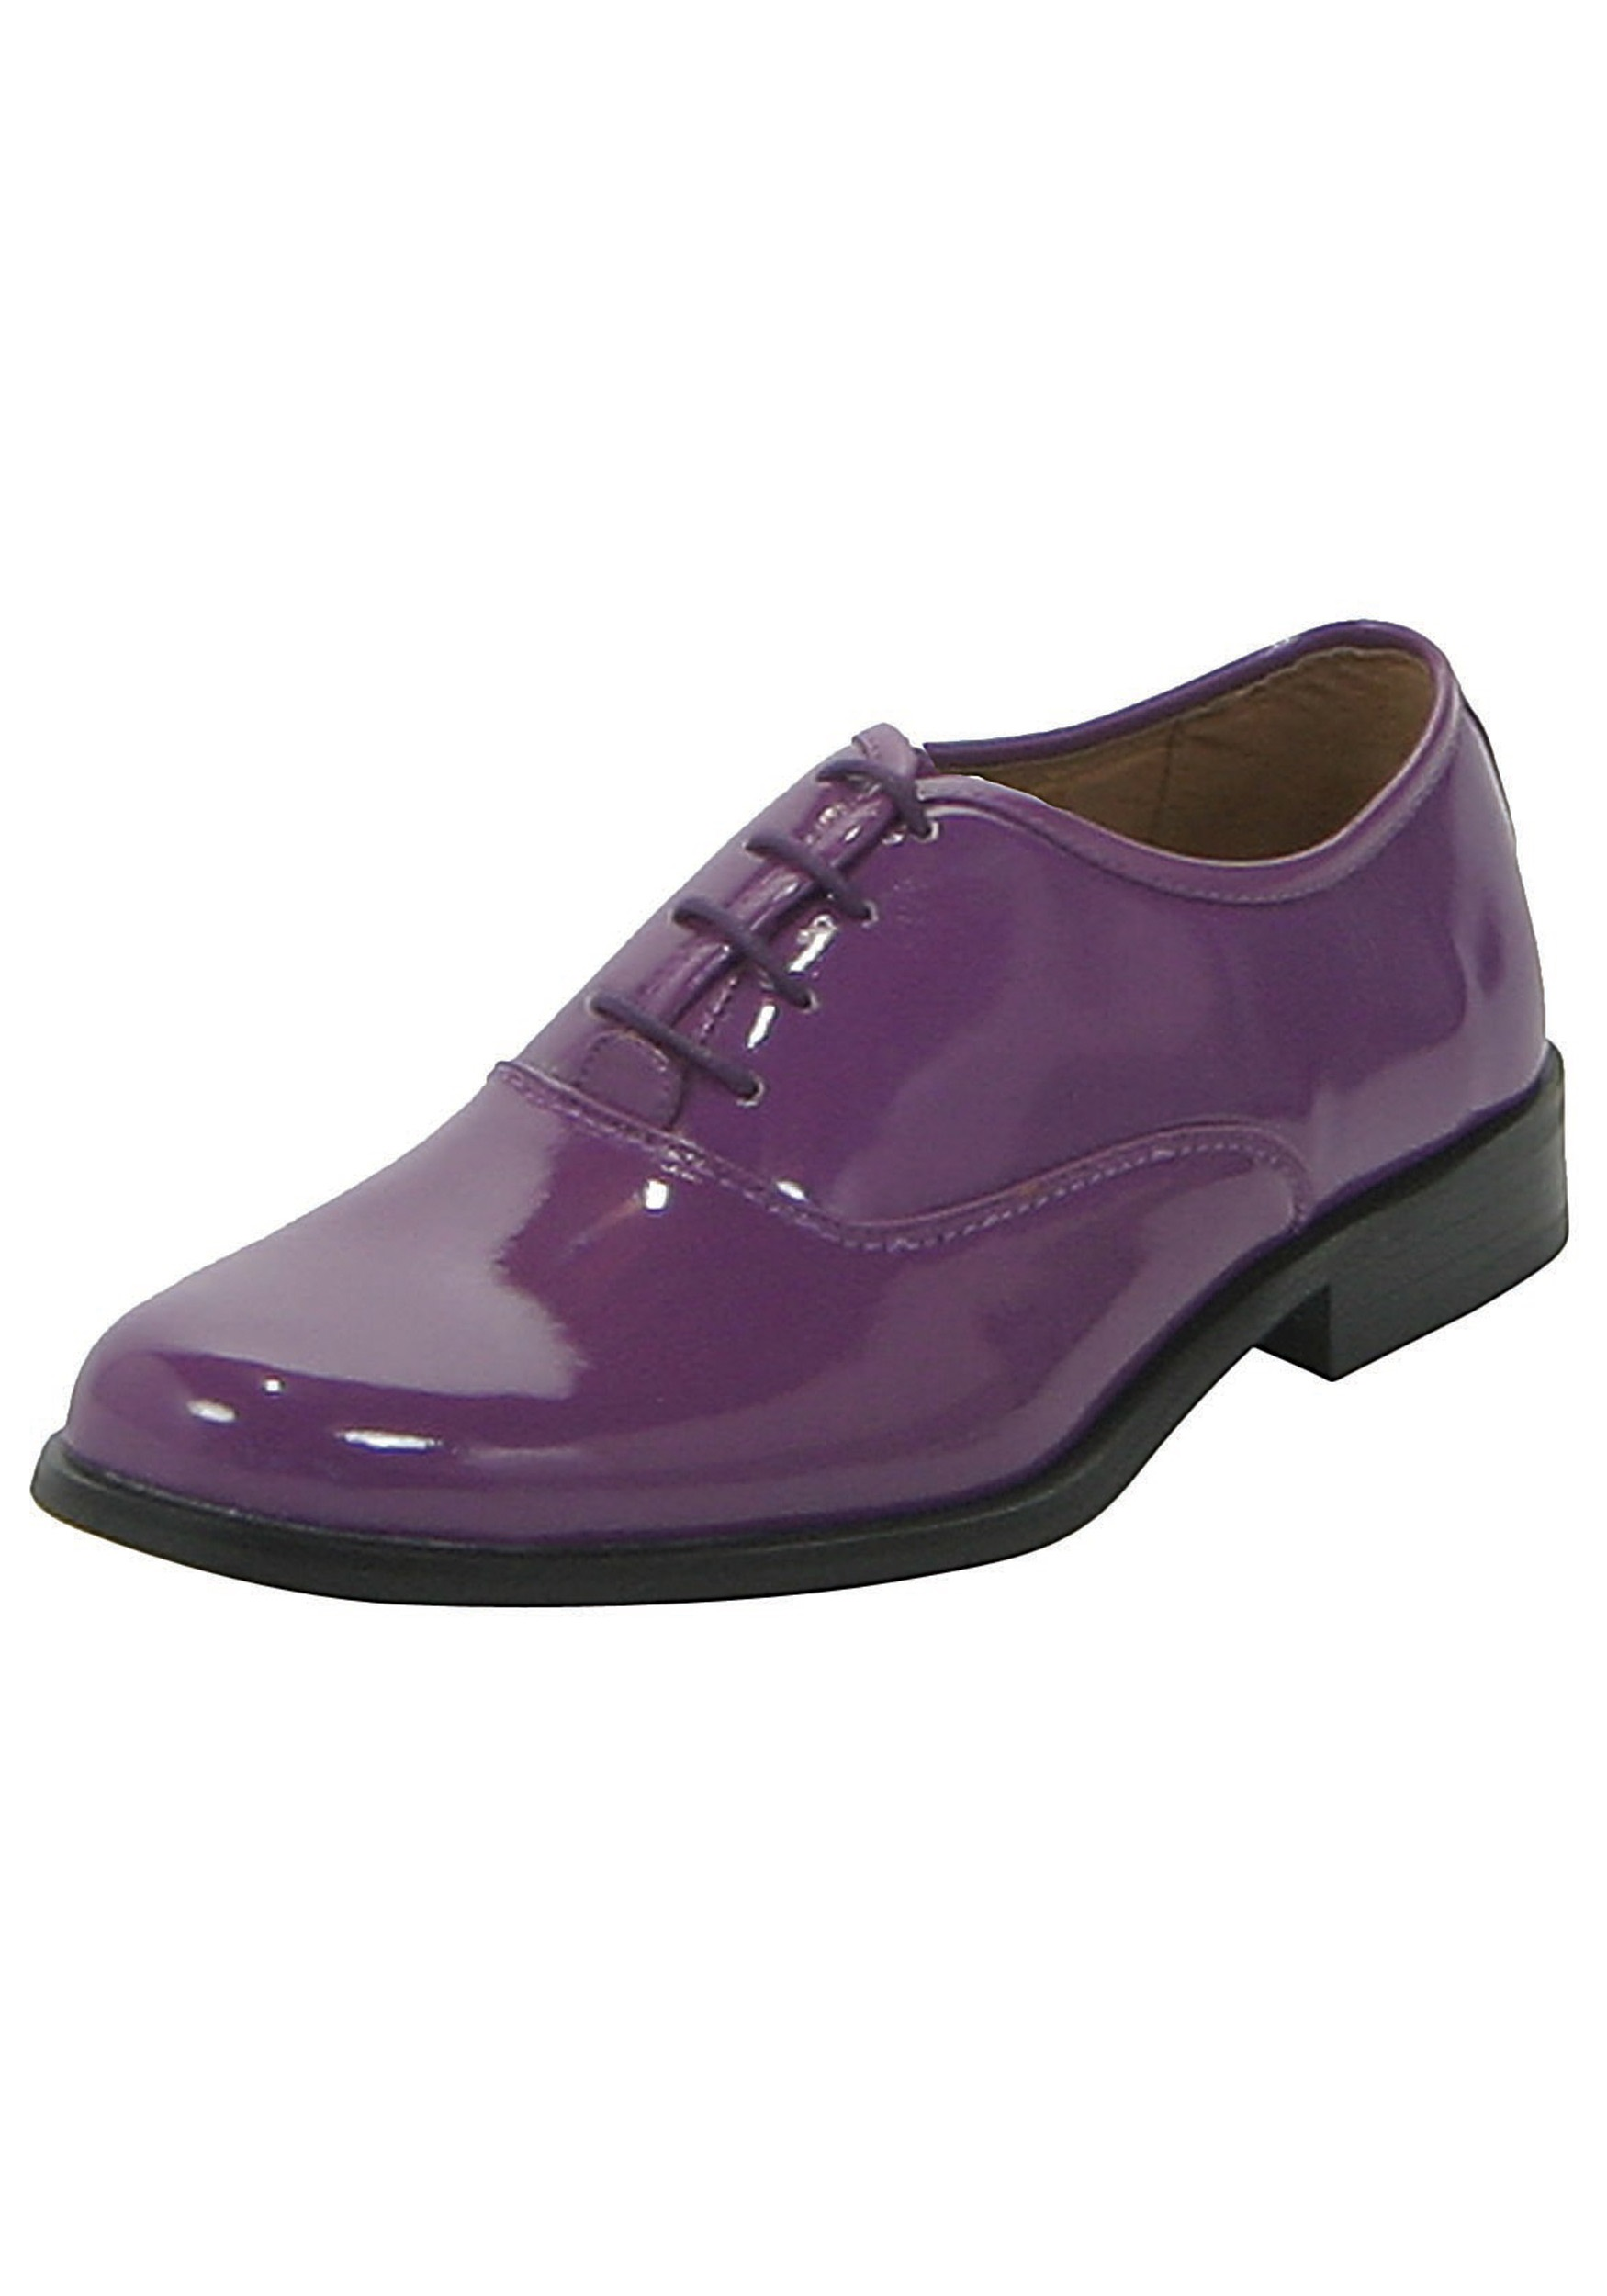 Purple Dress Shoes - Prom Tuxedo Shoes